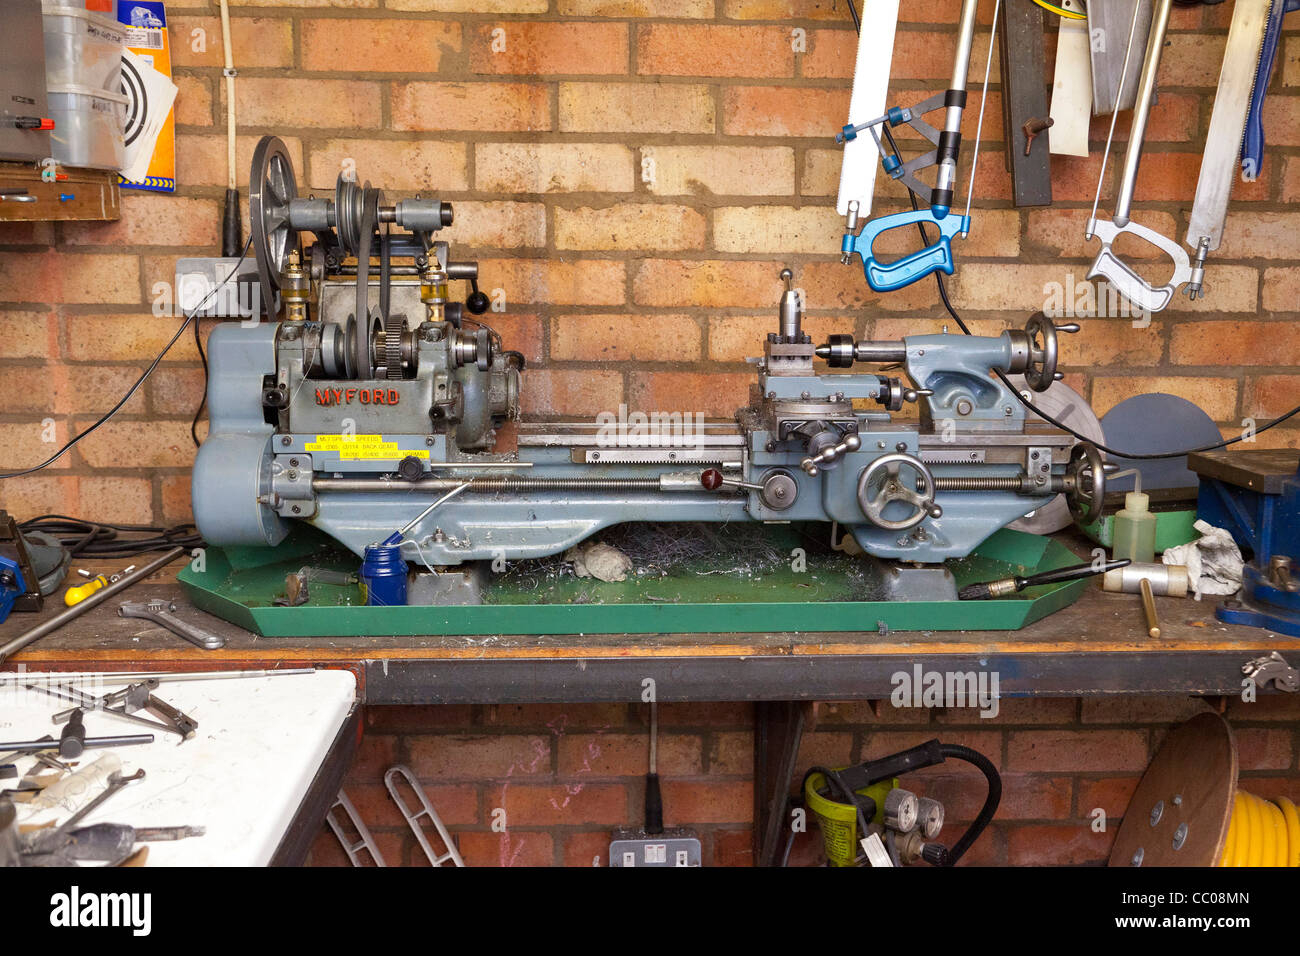 Myford metalwork lathe in workshop - Stock Image